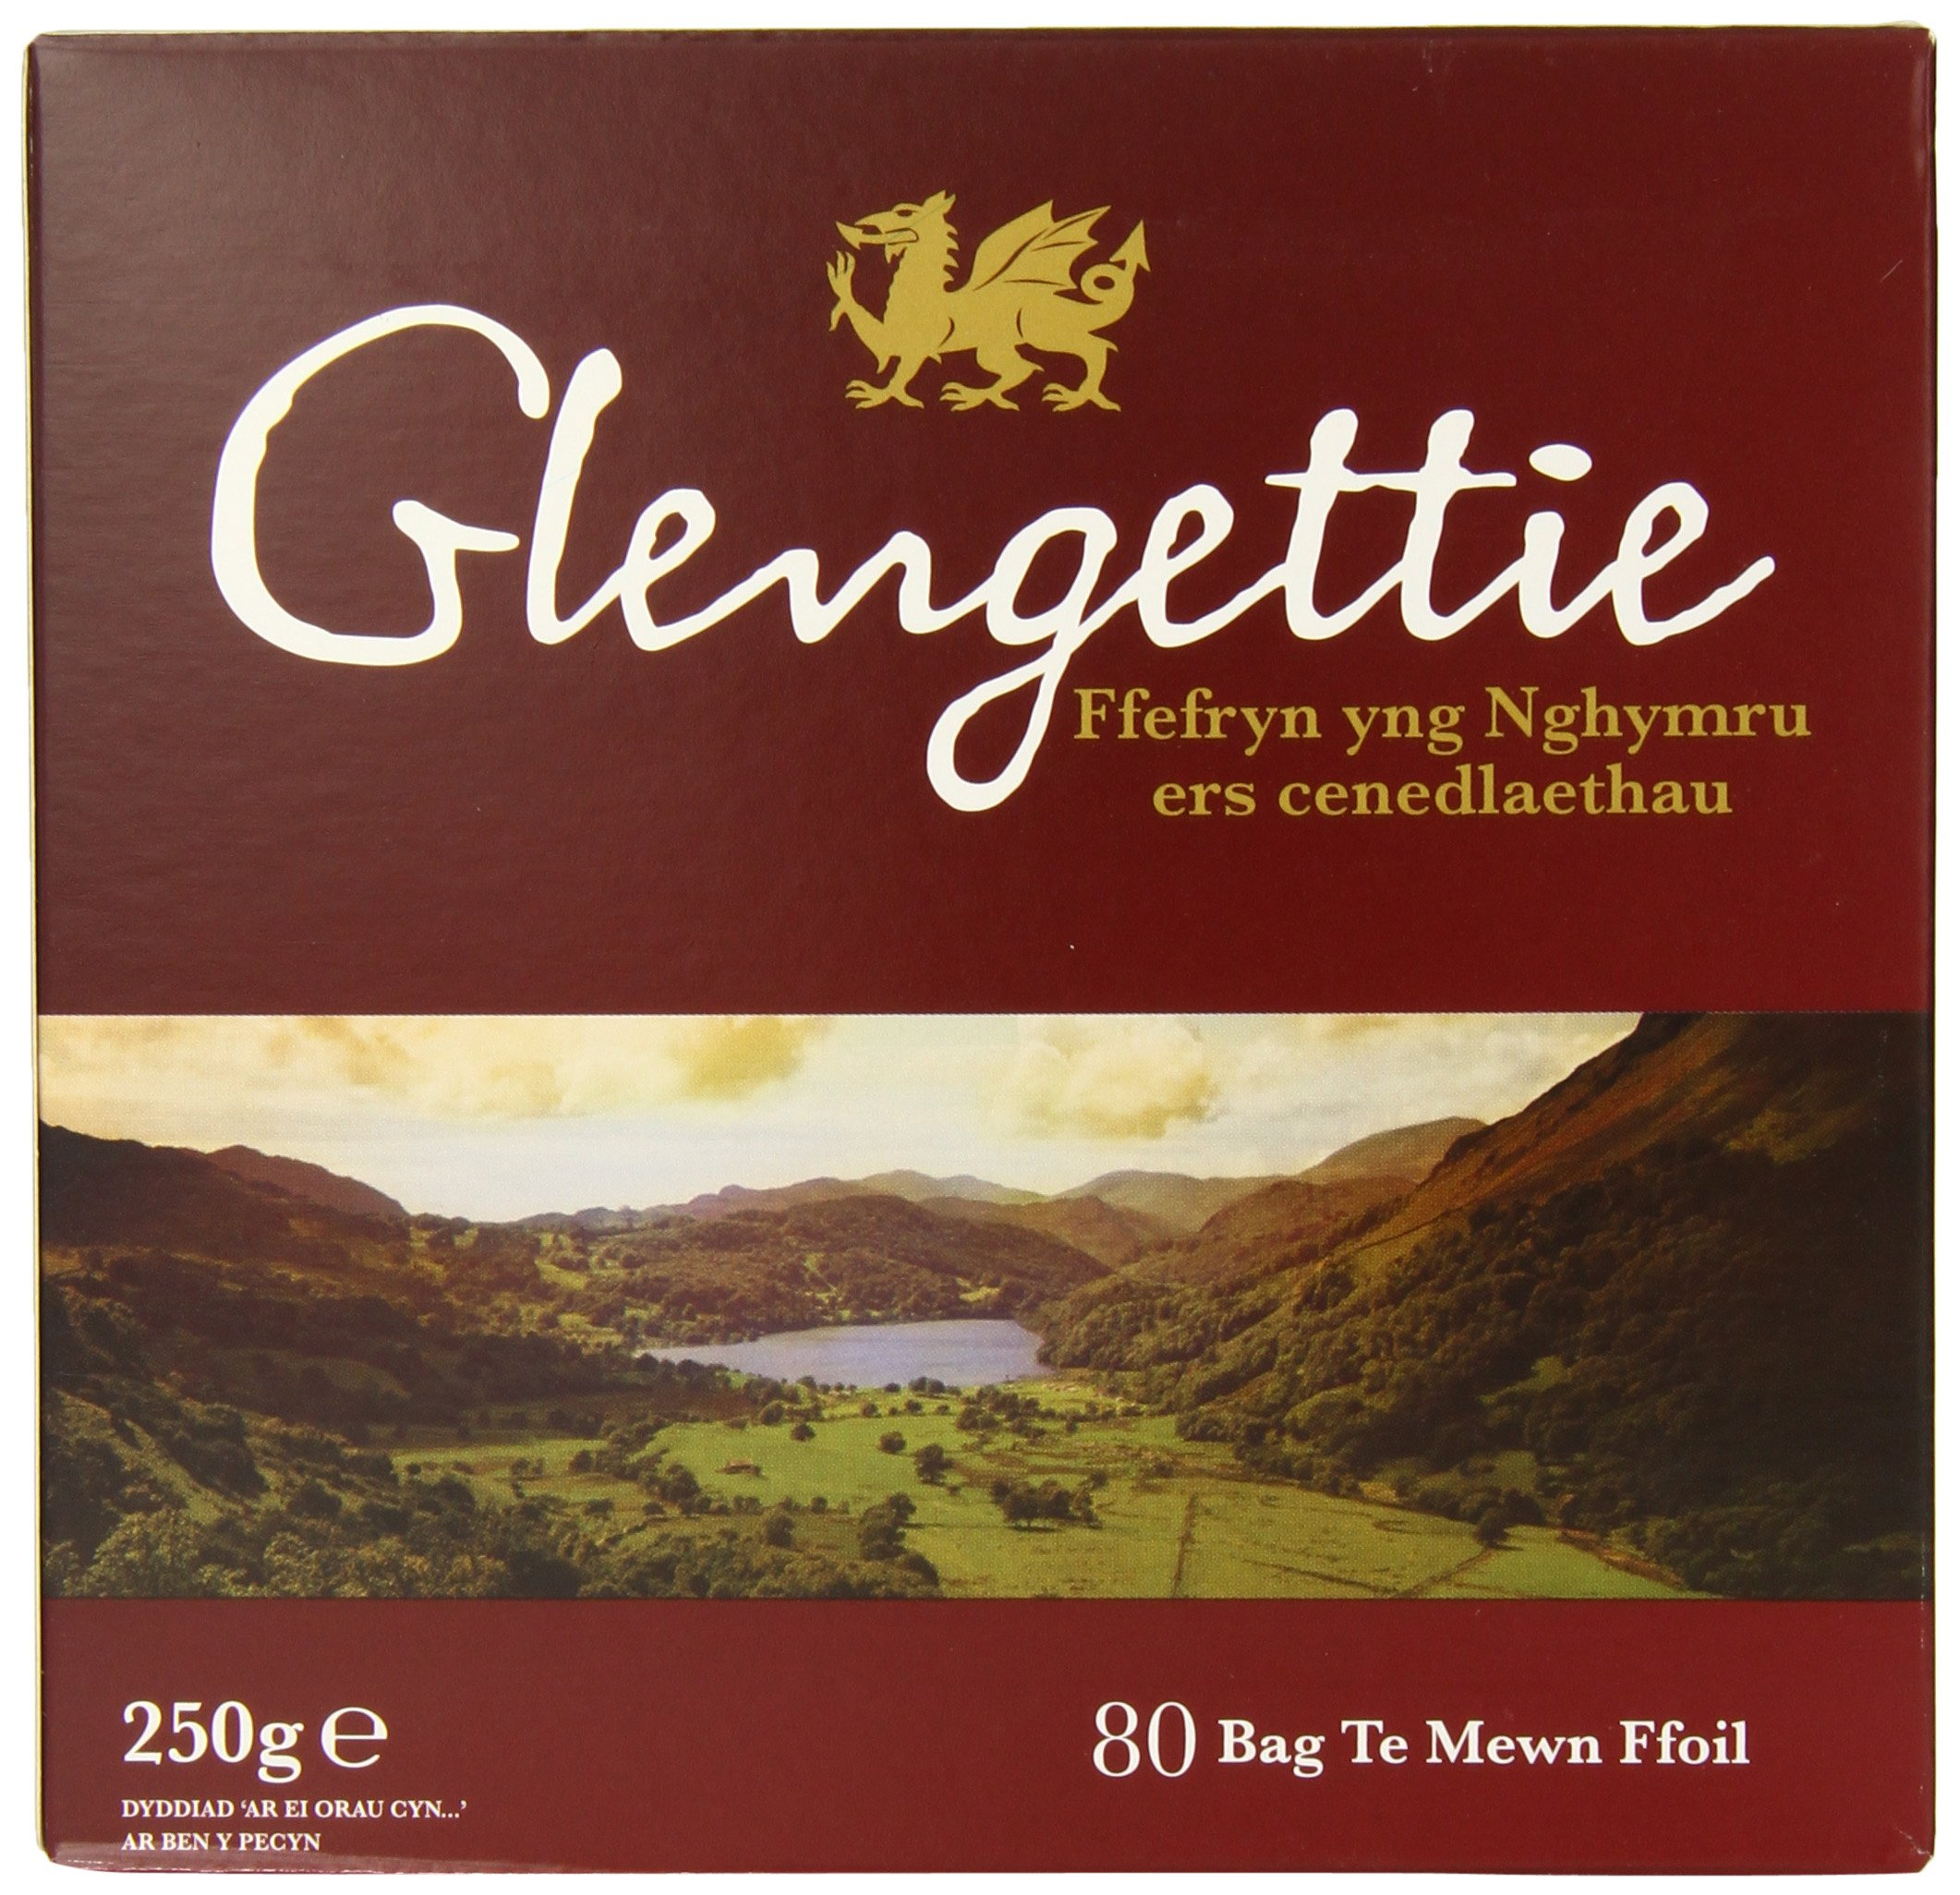 Glengetti Teabags, 80 Count (Pack of 6)